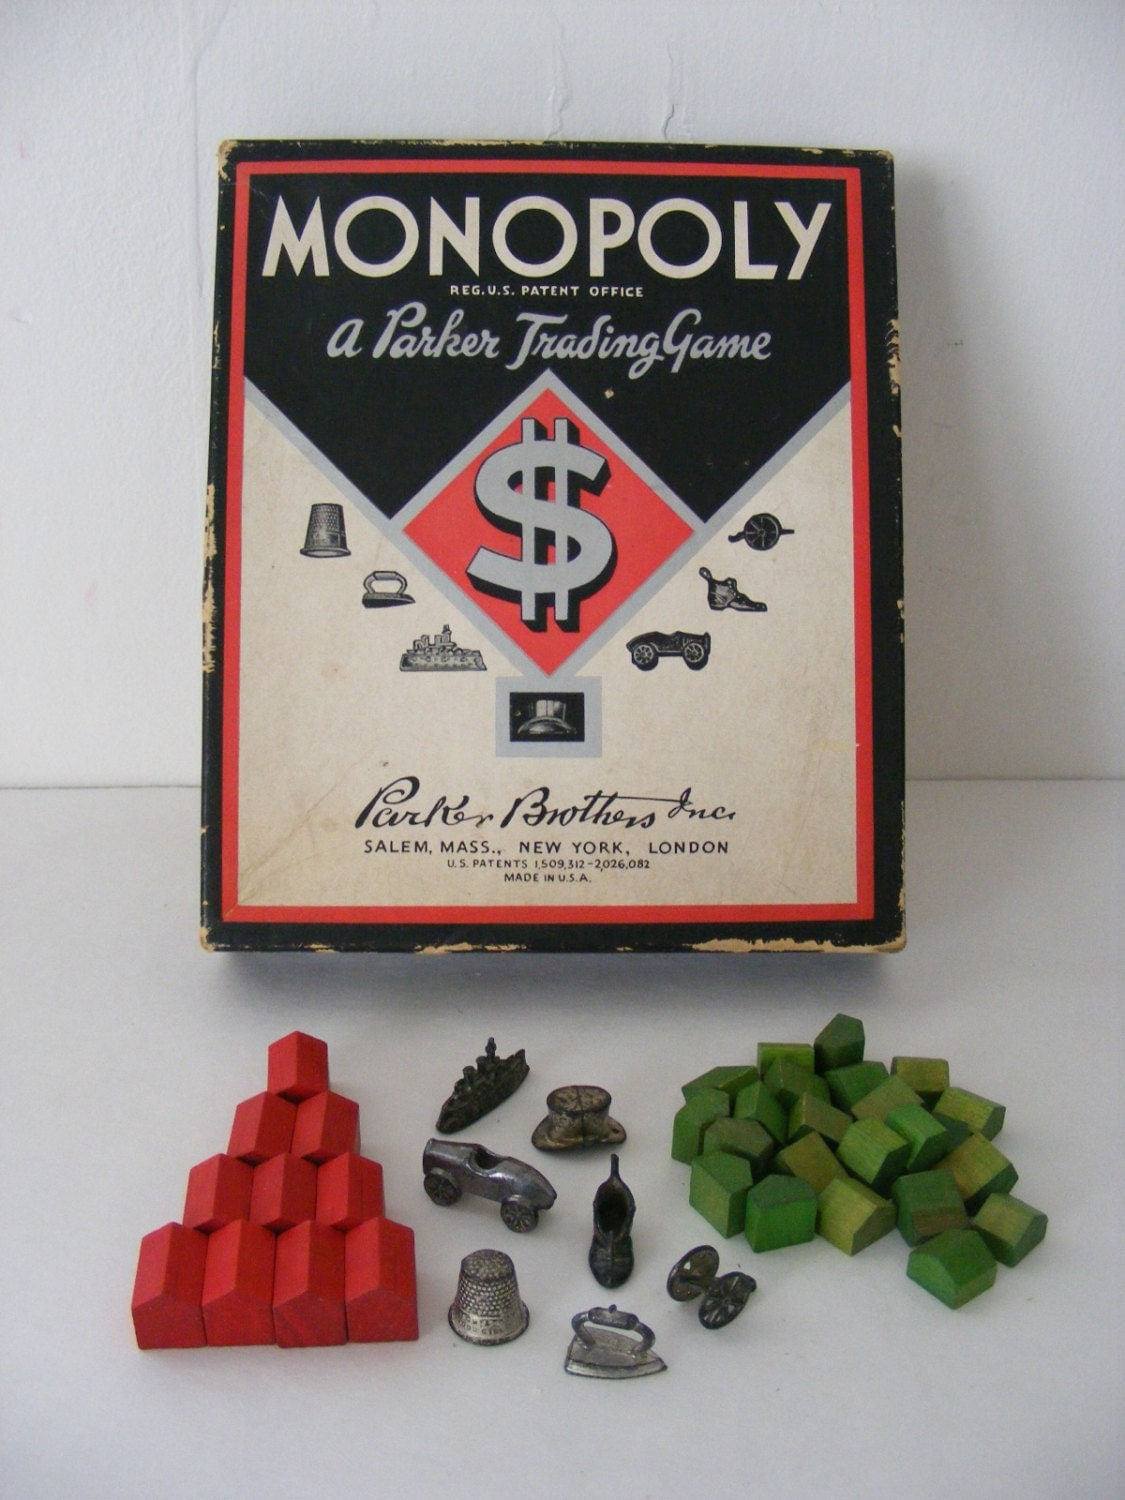 Monopoly game pieces